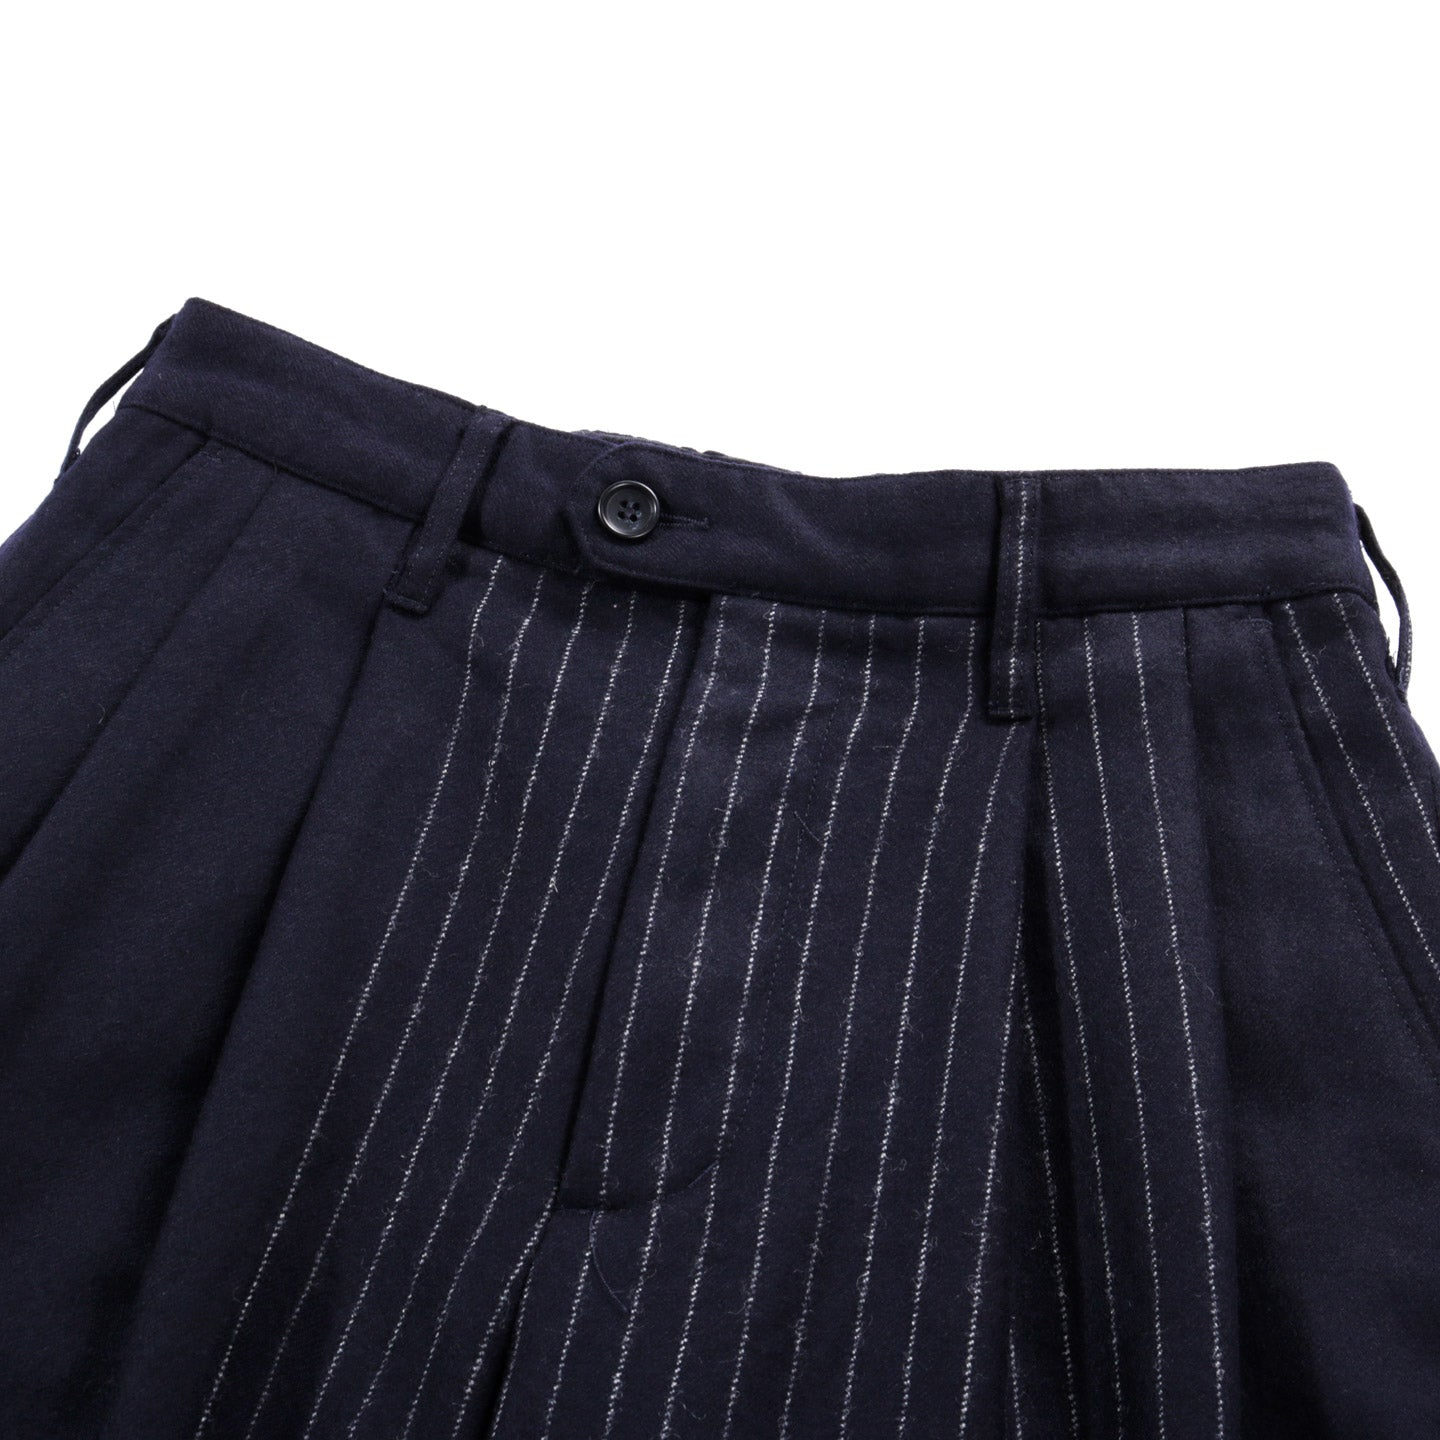 ENGINEERED GARMENTS EMERSON PANT DARK NAVY WOOL CHALK STRIPE